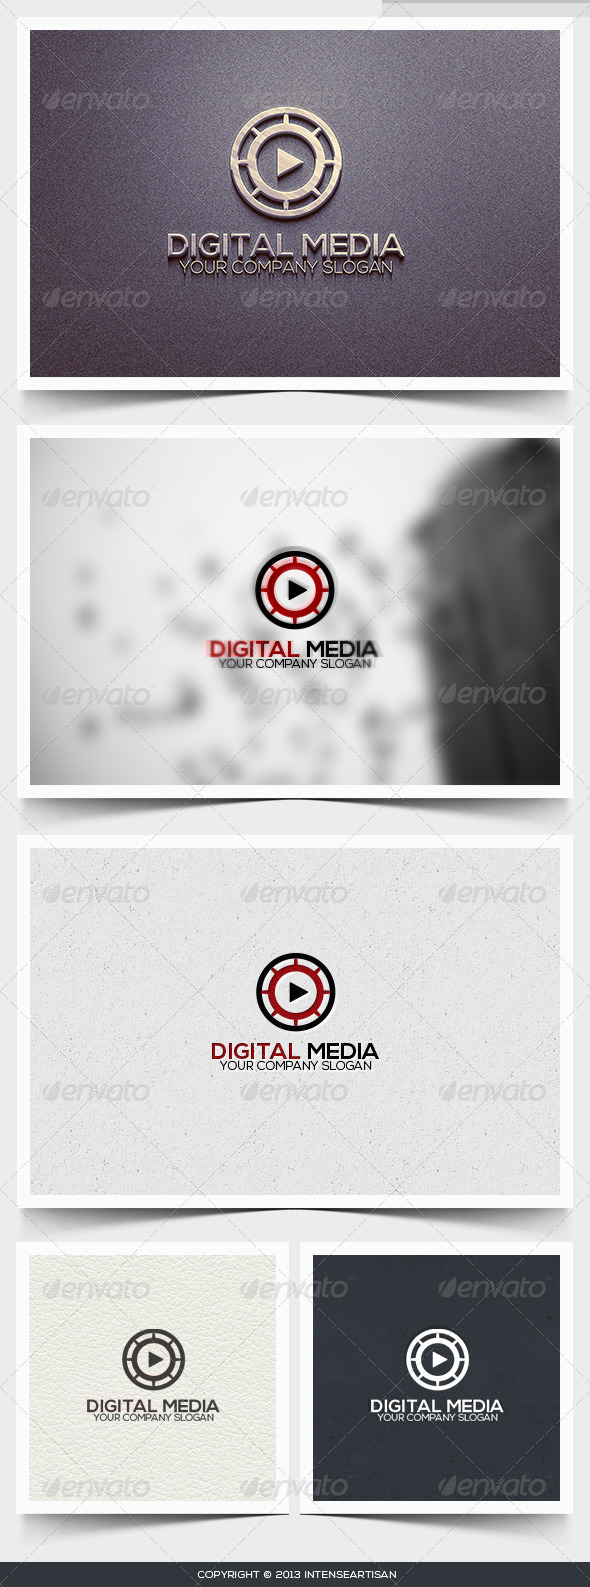 Digital Media Logo Template - Objects Logo Templates